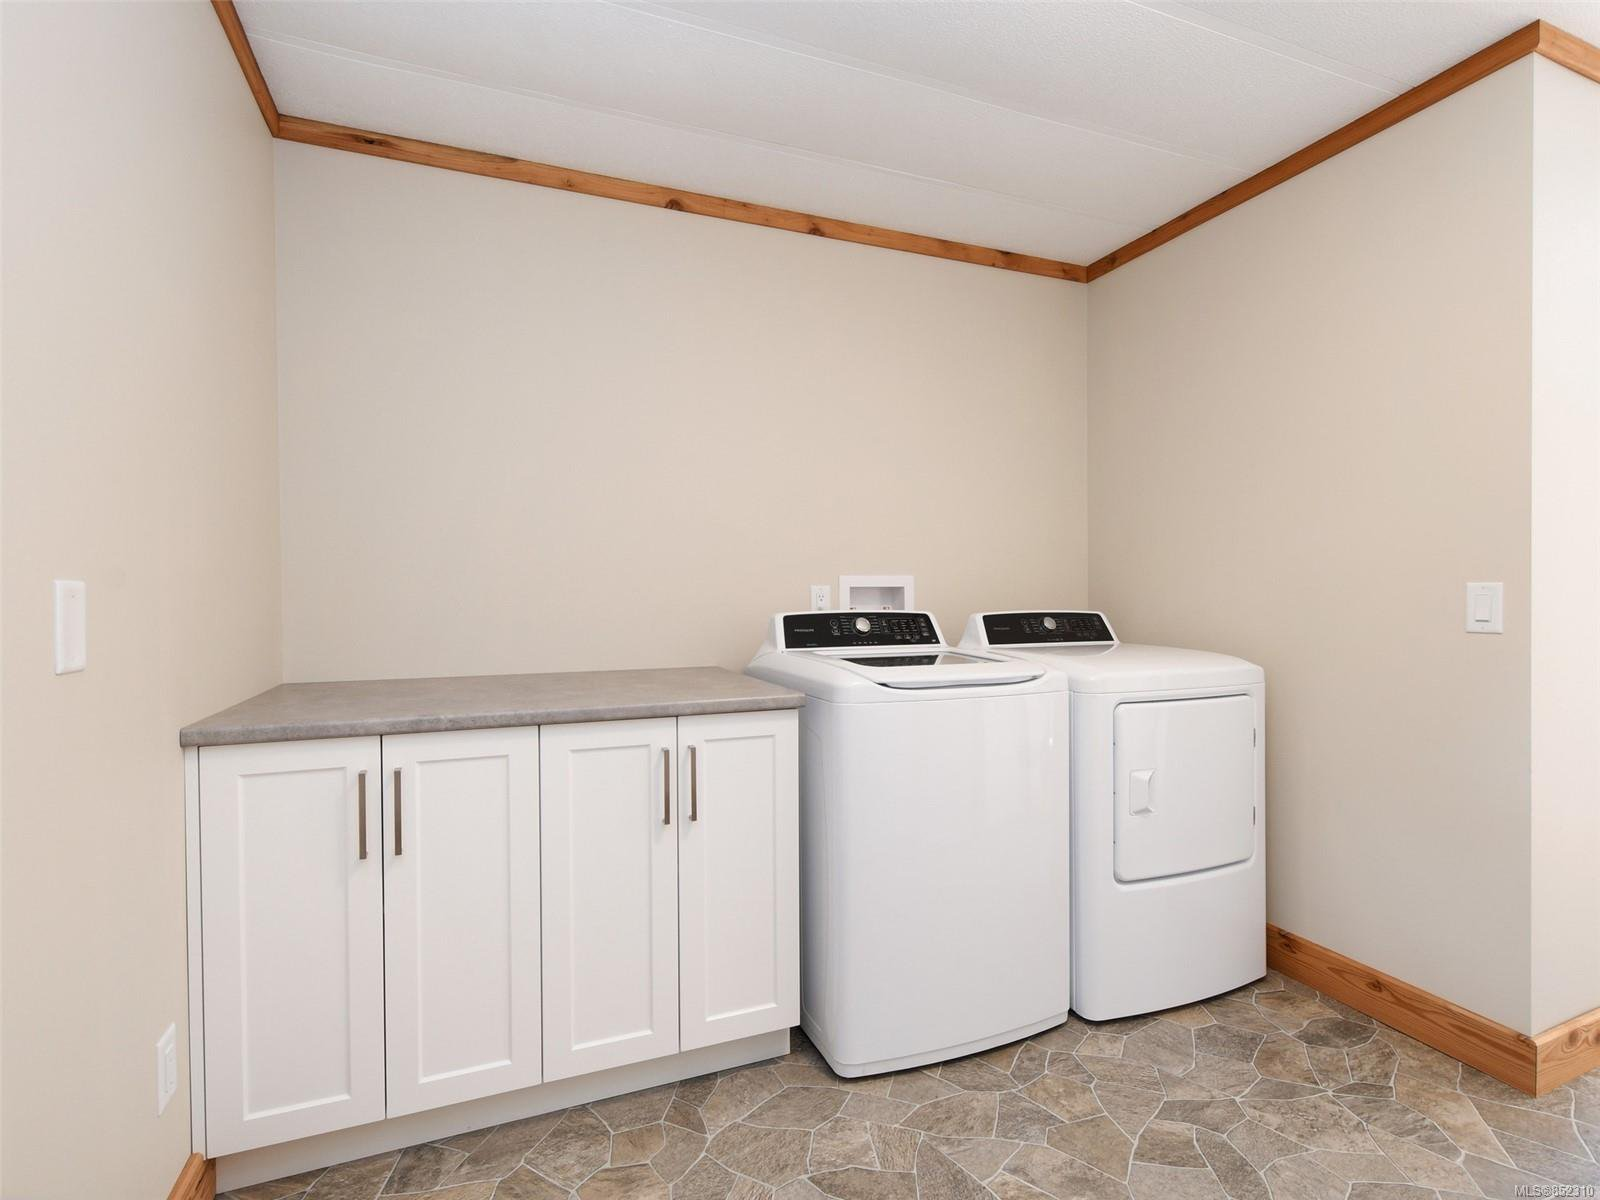 Photo 18: Photos: 94 5838 Blythwood Rd in : Sk Saseenos Manufactured Home for sale (Sooke)  : MLS®# 852310